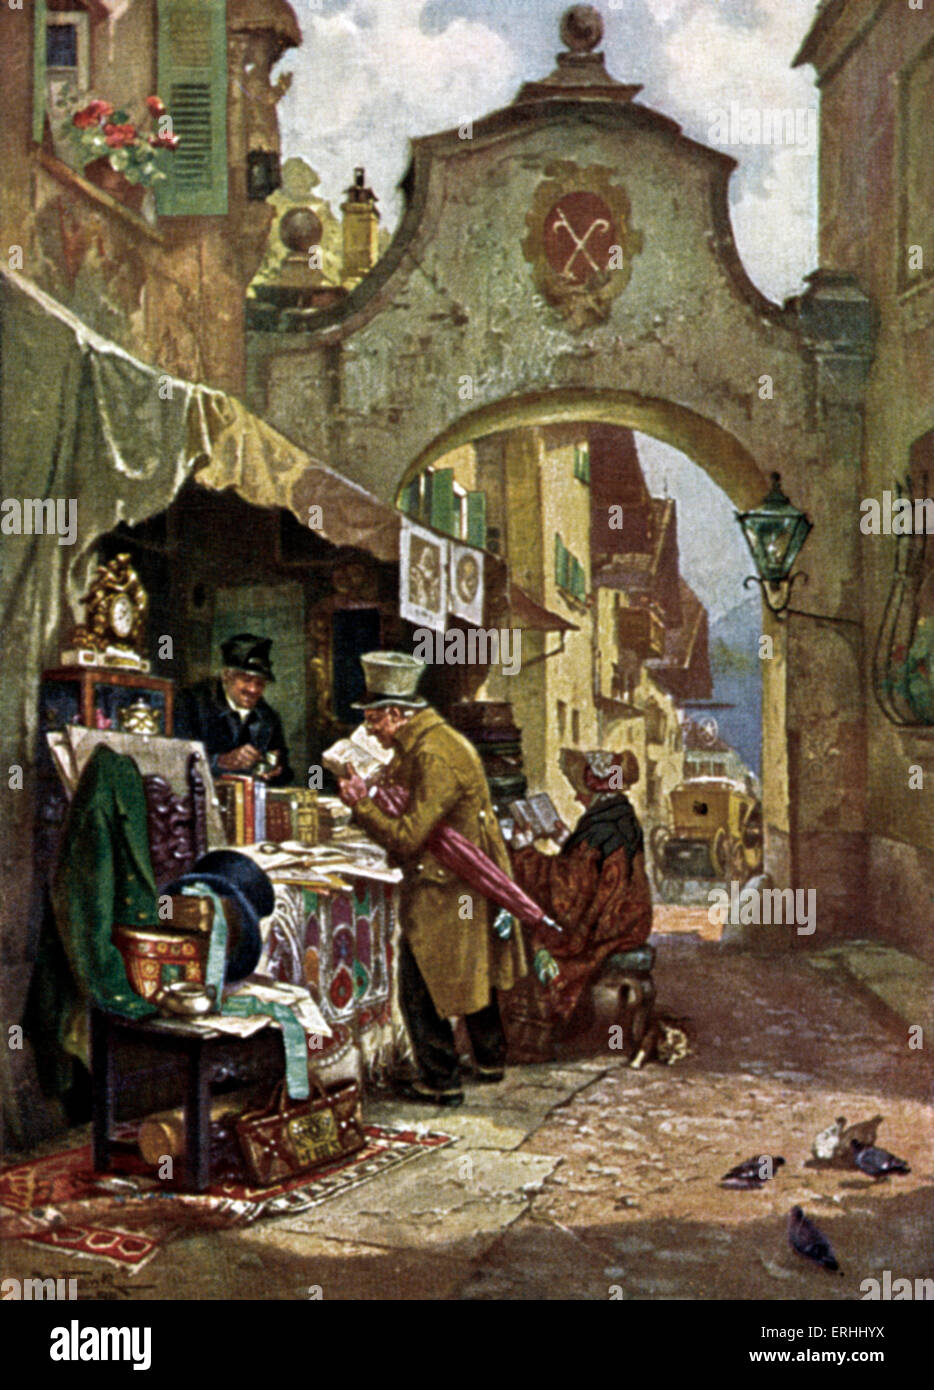 The rare book seller Le bouquiniste. . By Jos. Frank. Typical town street in background. Carriage. Antiques. Central - Stock Image